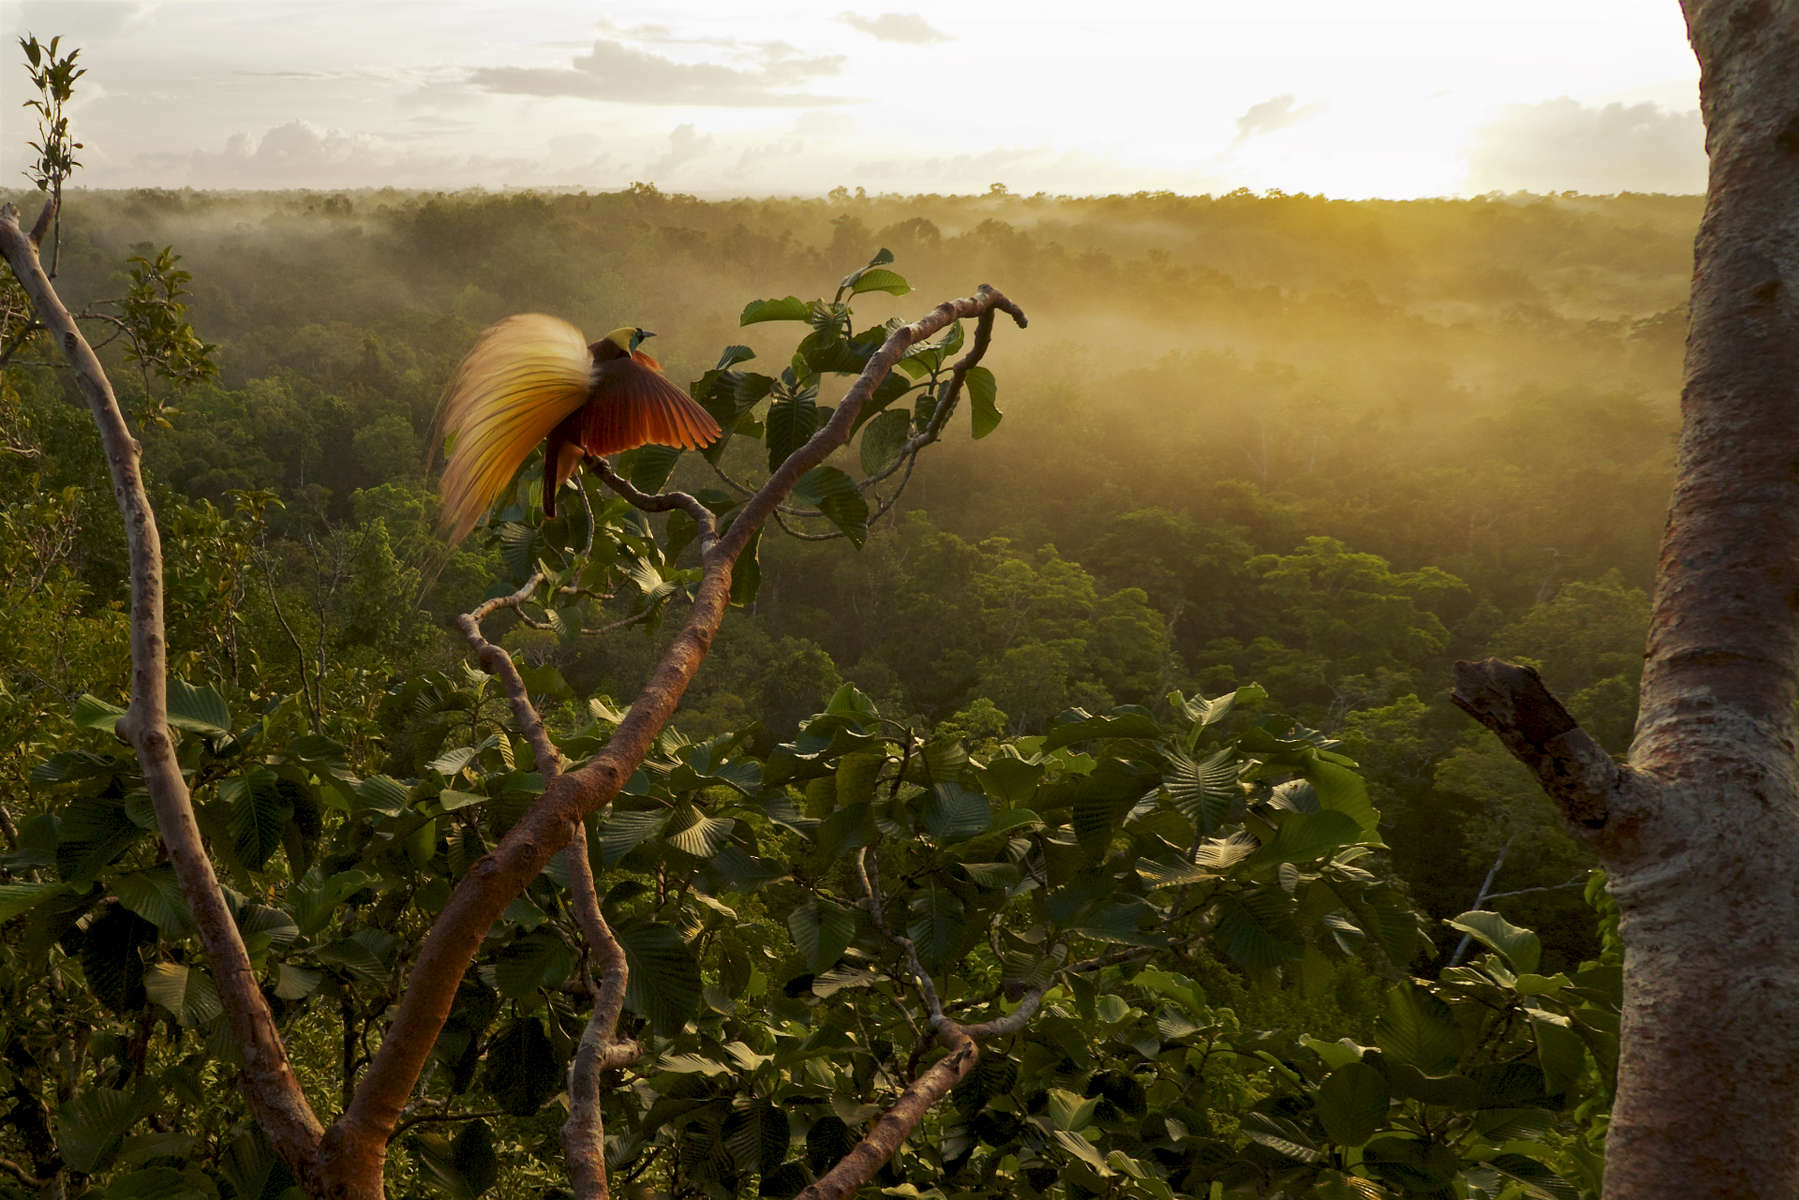 Greater Bird-of-Paradise (Paradisaea apoda) in the canopy at sunrise.Purchase an unsigned print.